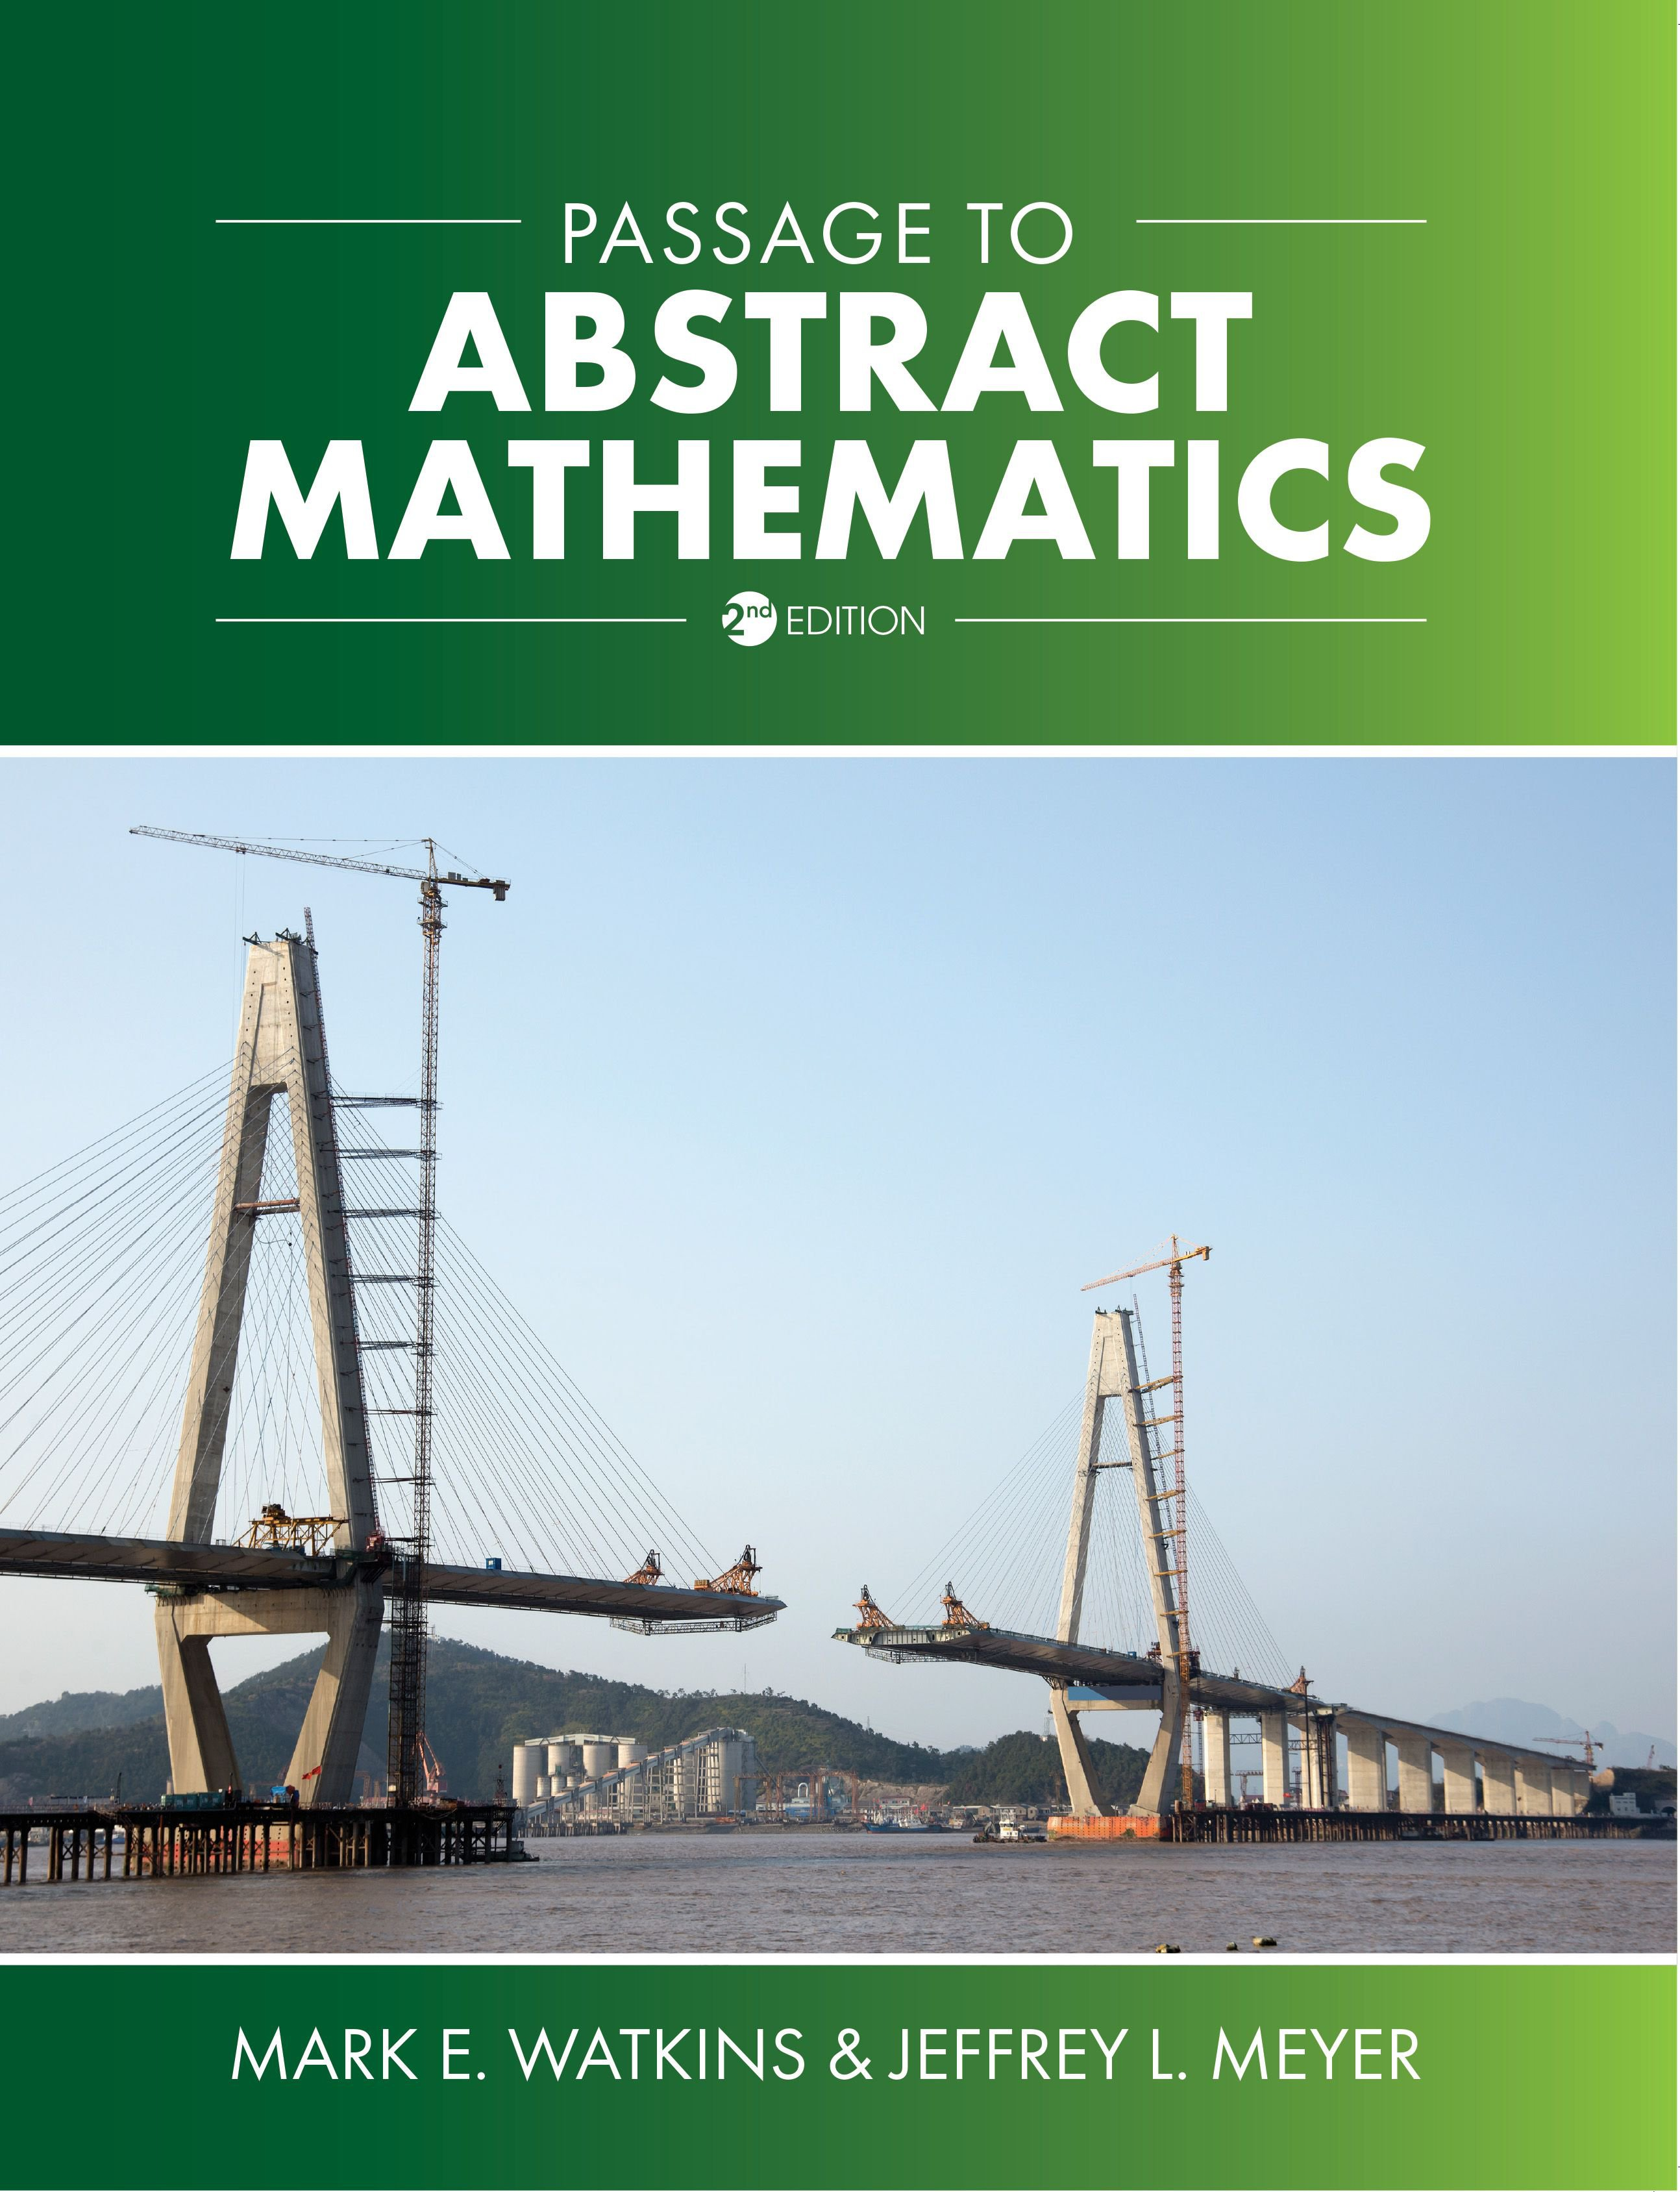 Passage to Abstract Mathematics, 2nd edition